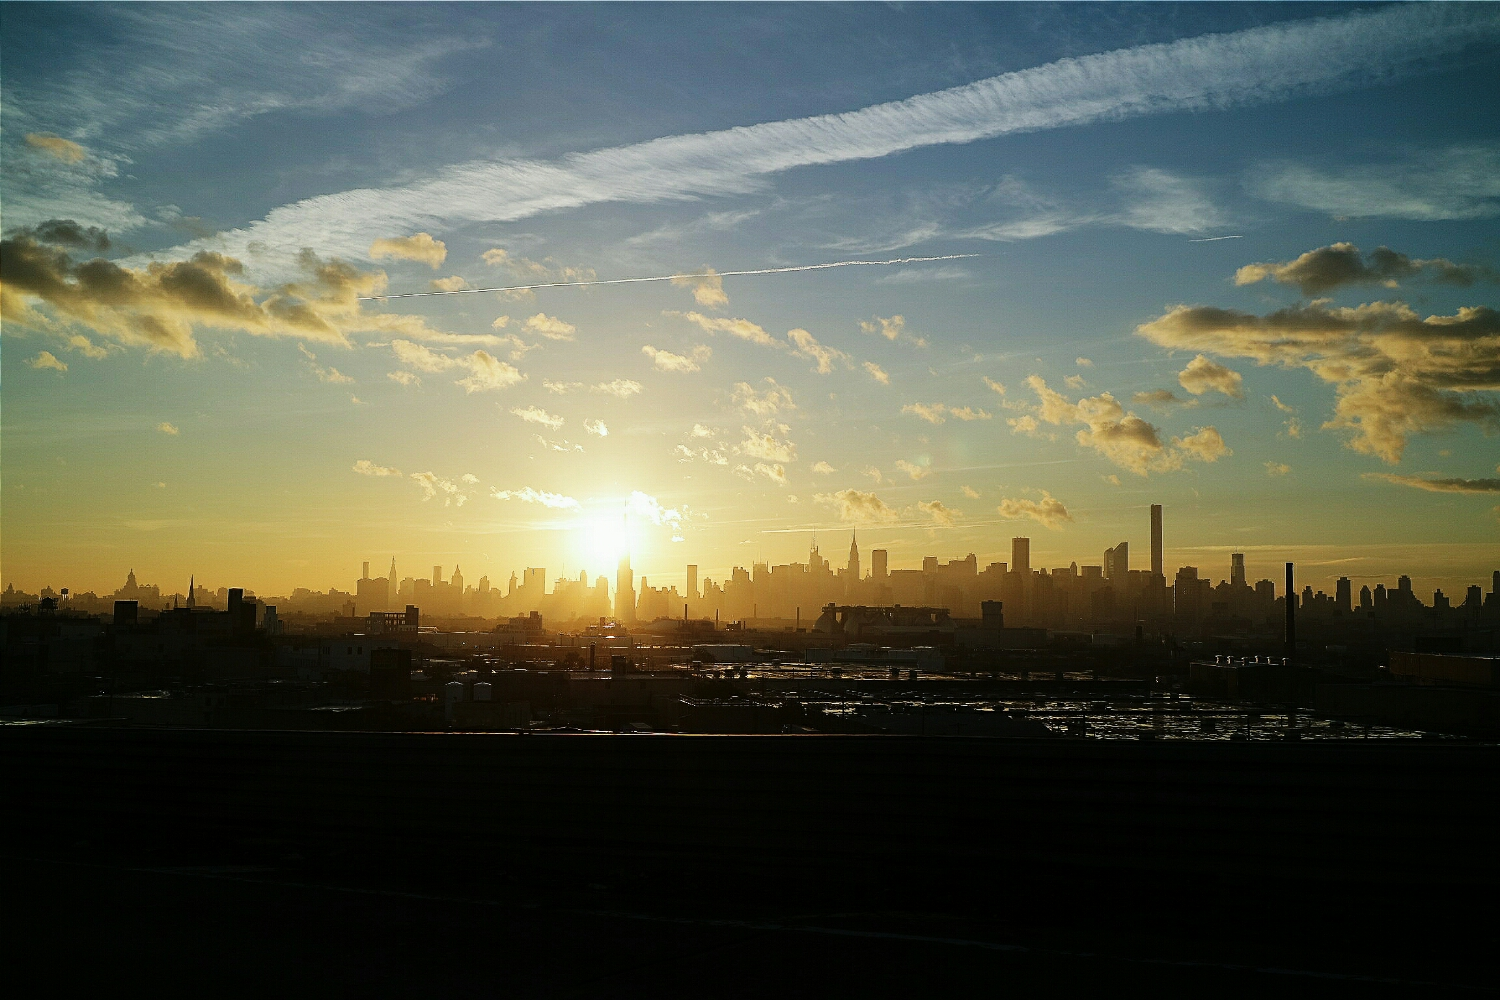 On the Brooklyn Queens Expressway